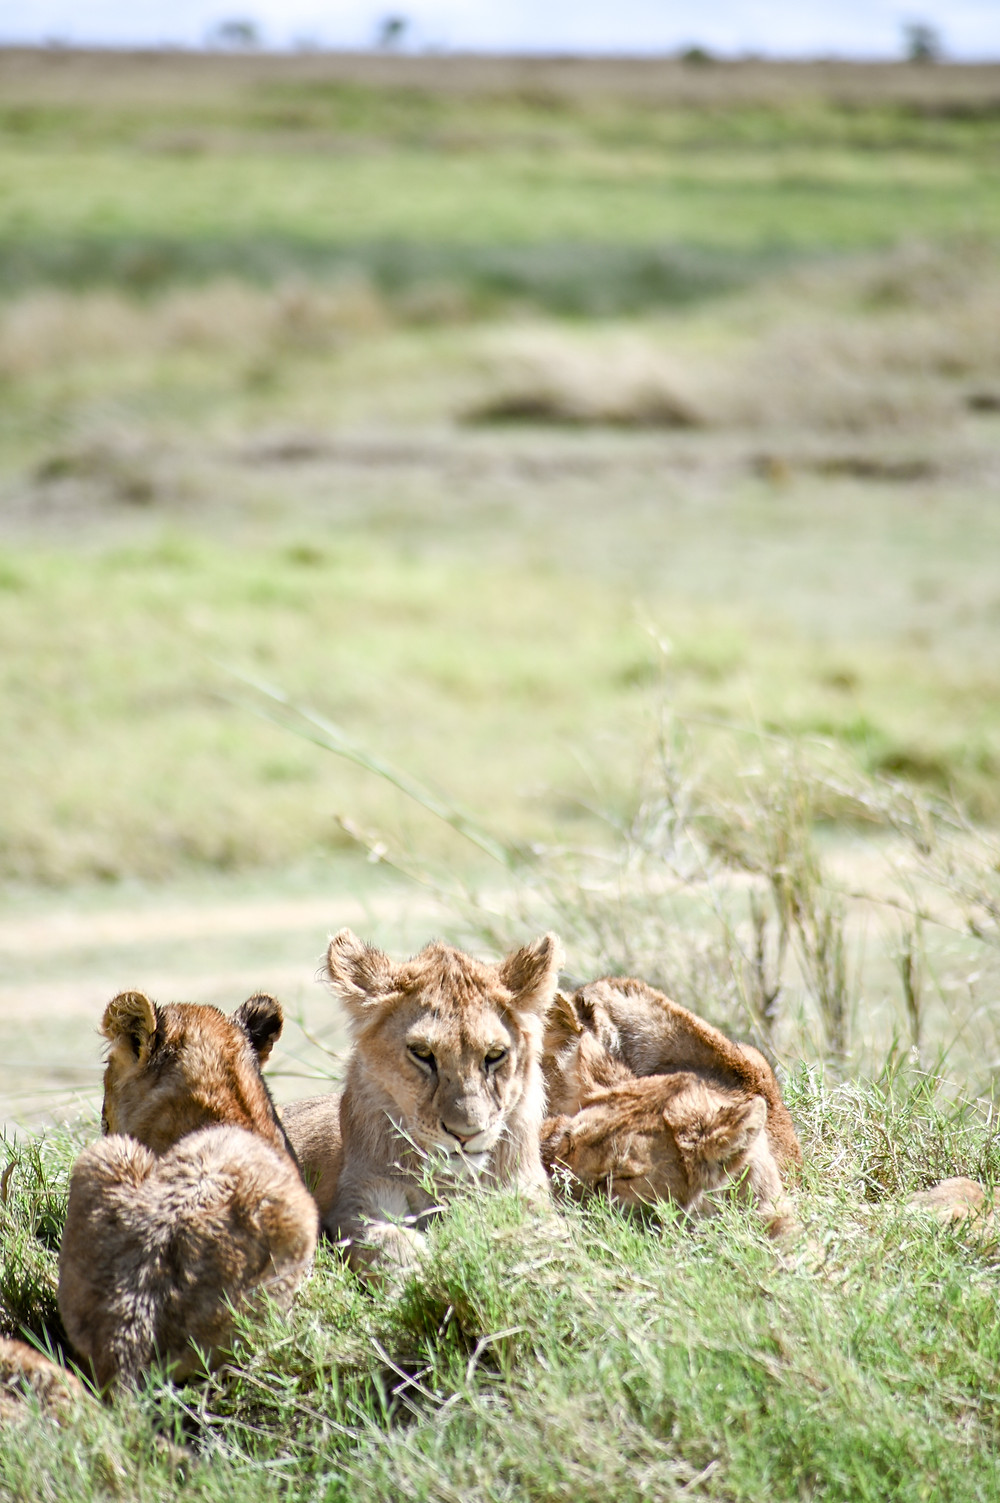 Lion cubs waiting for the pride to return. | Trac.City